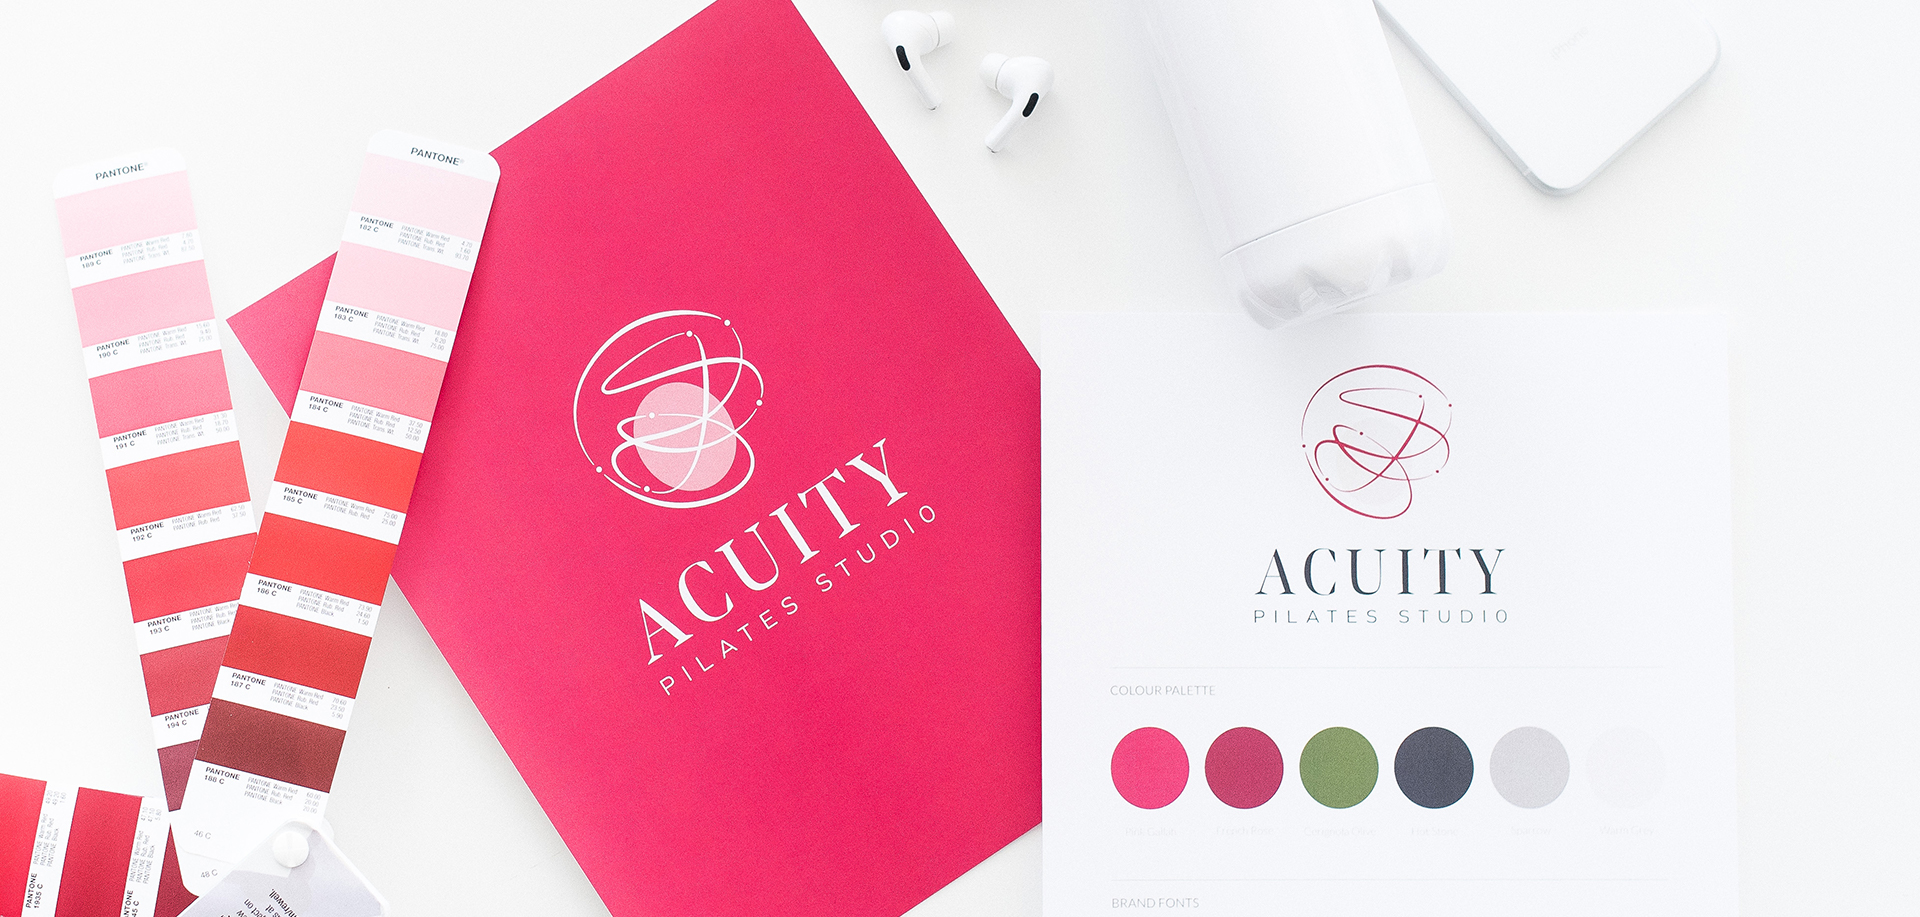 Acuity brand guideline - White Canvas Design